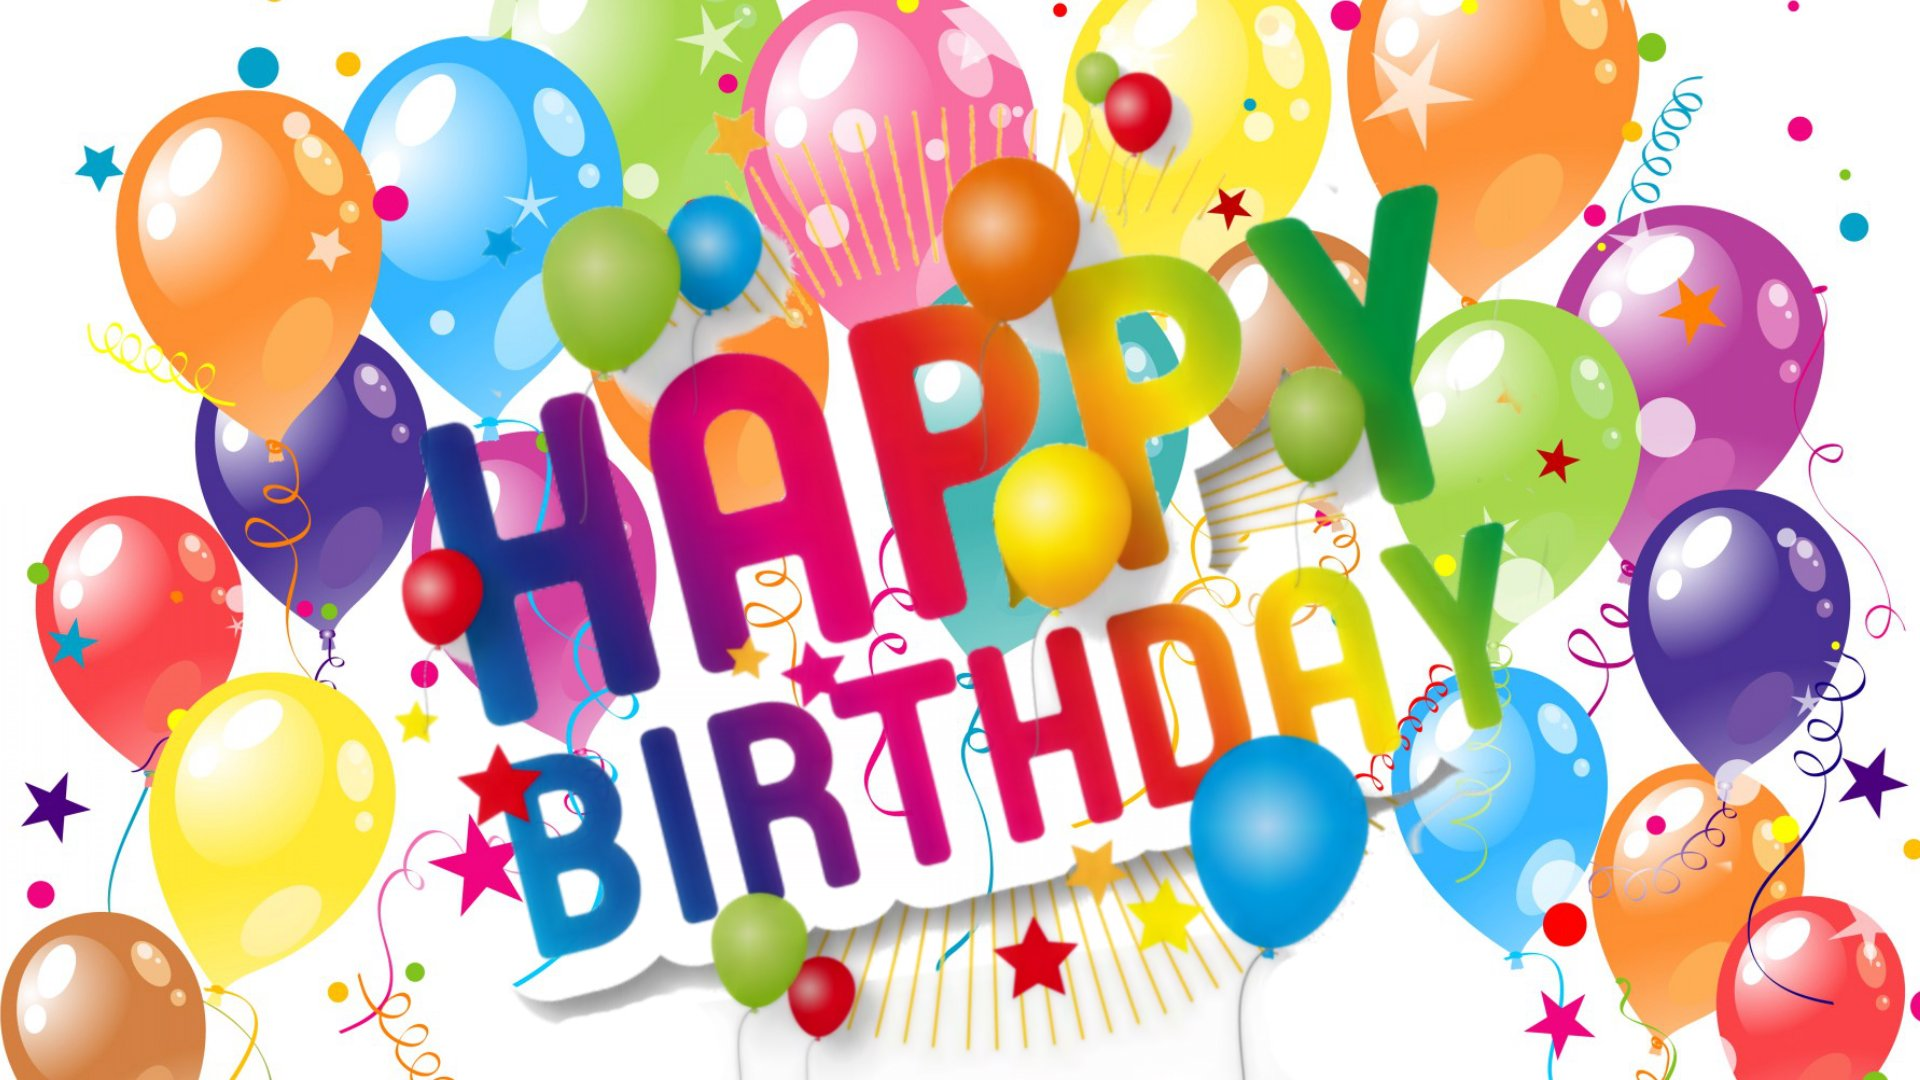 free birthday wallpaper images ; 0e8015668d924dbee997a68398fd2914